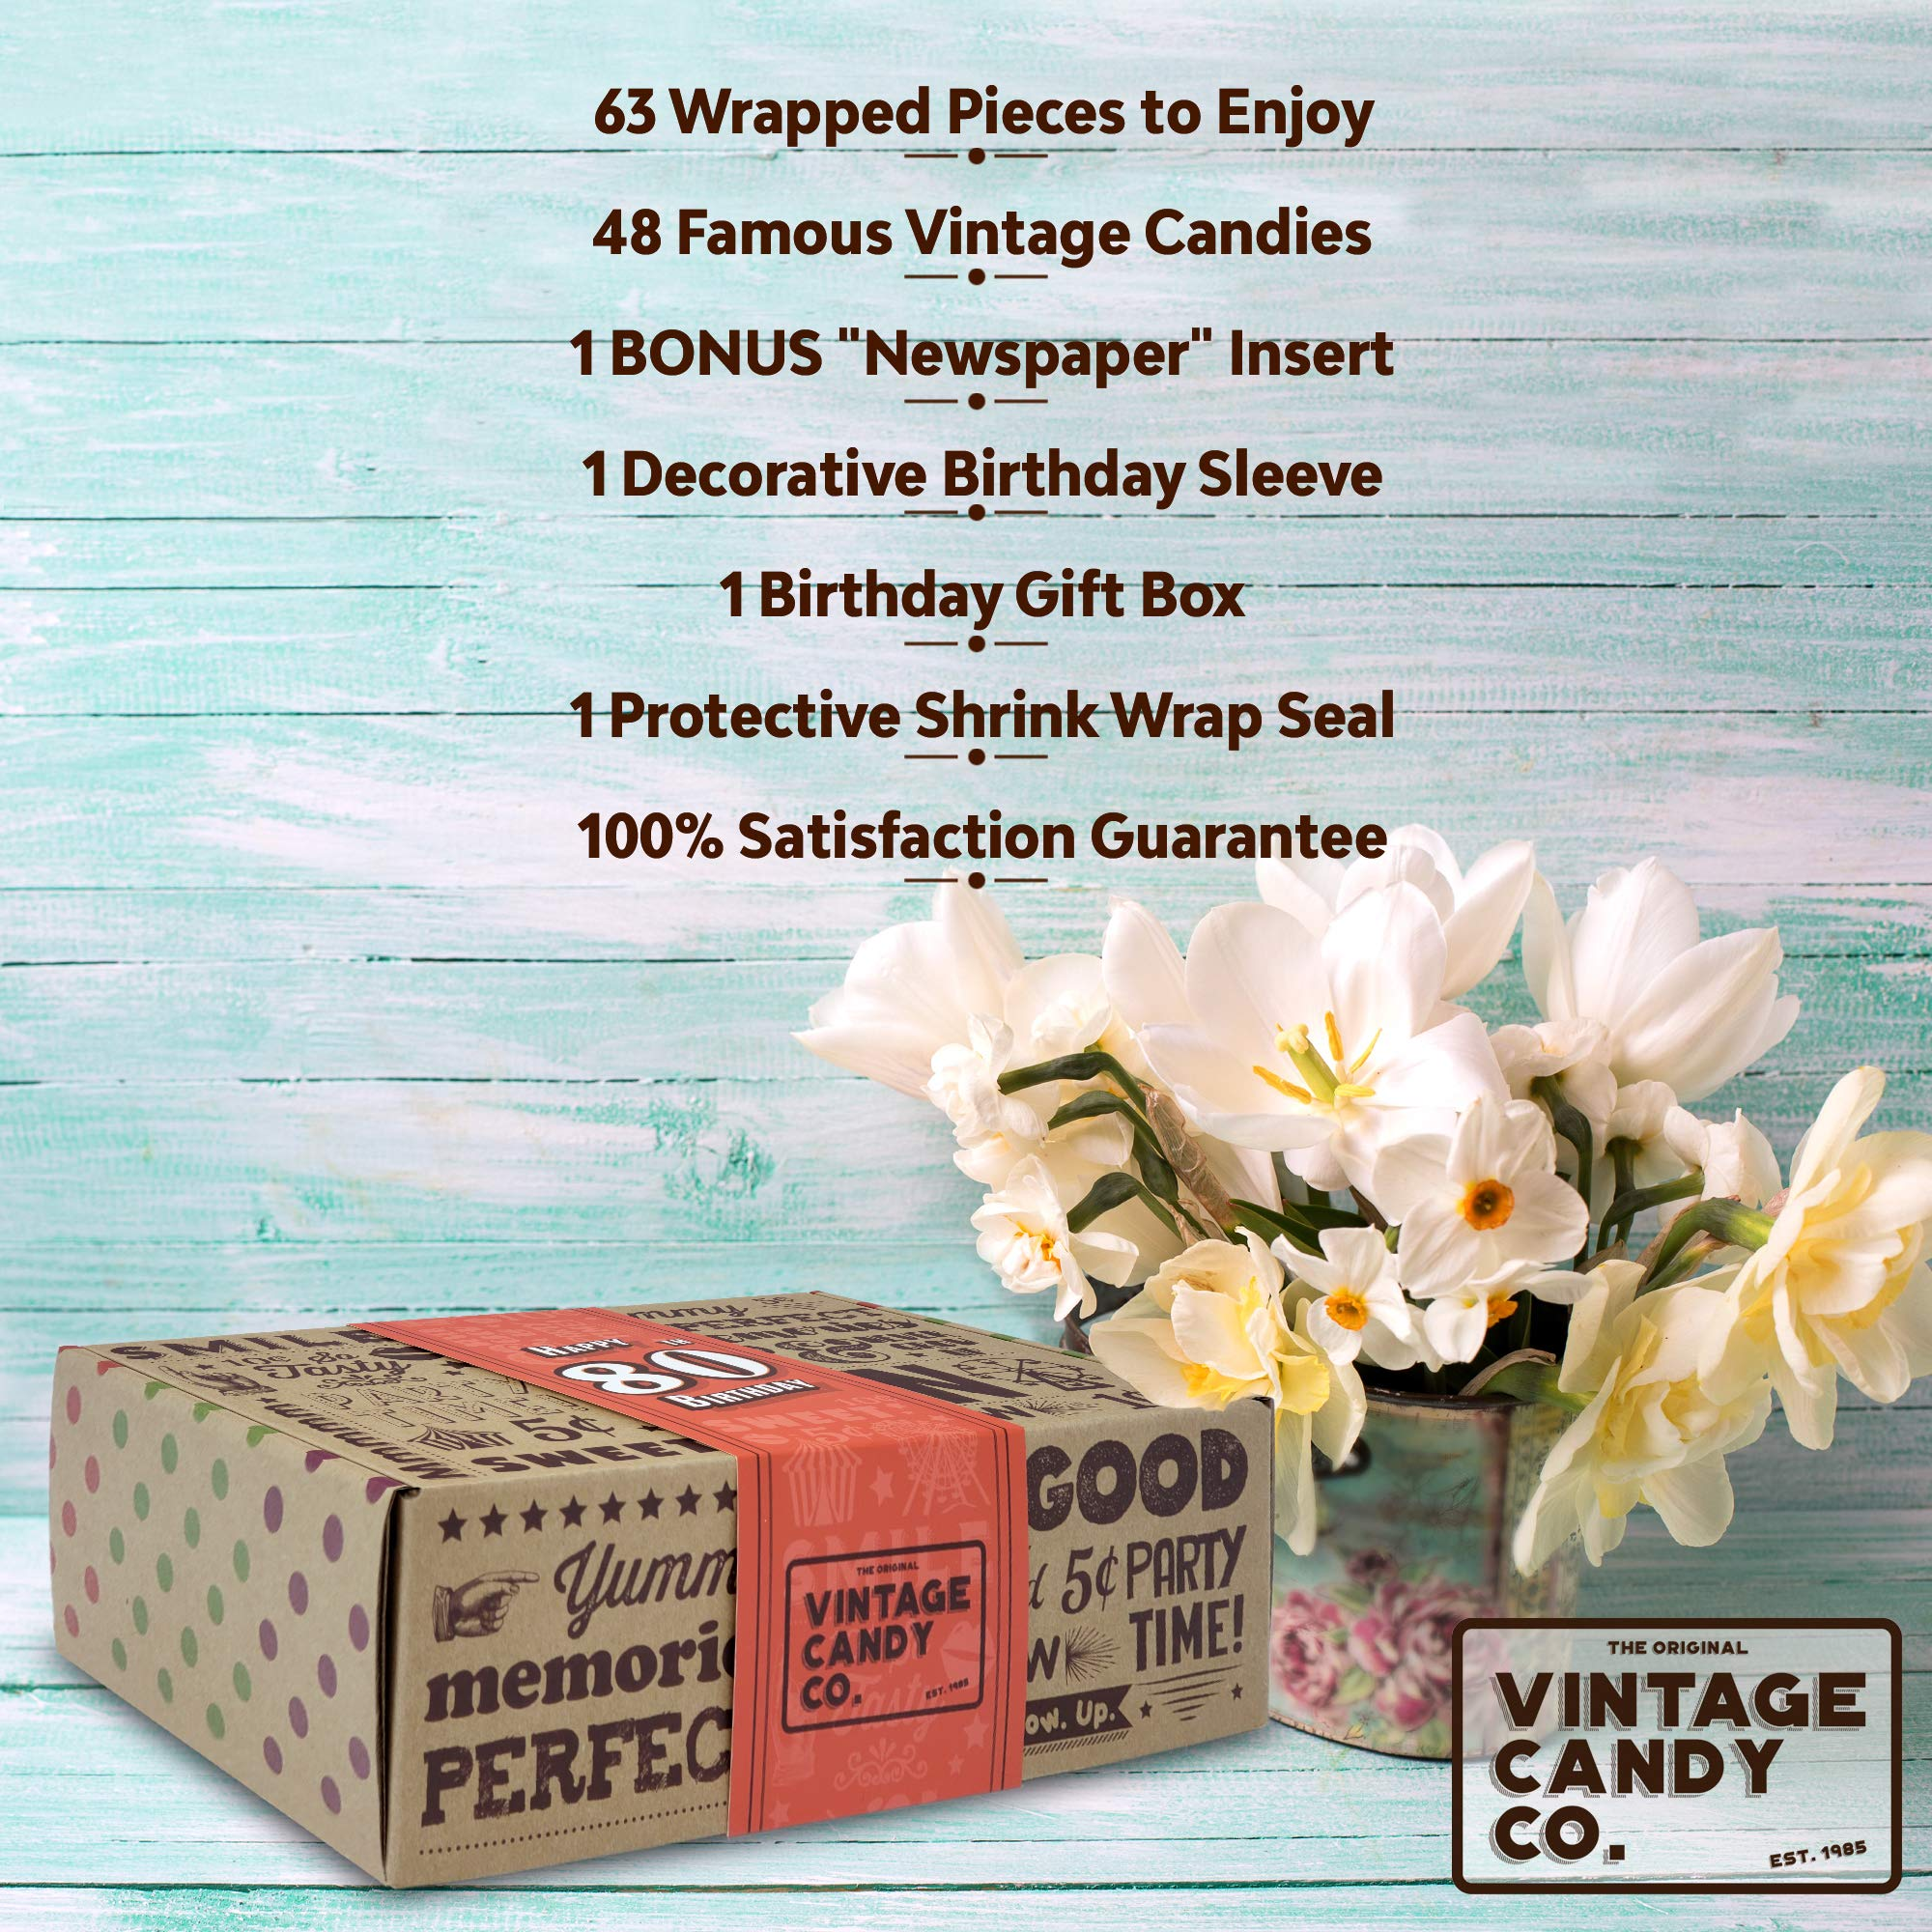 VINTAGE CANDY CO. 80TH BIRTHDAY RETRO CANDY GIFT BOX - 1939 Decade Nostalgic Childhood Candies - Fun Gag Gift Basket for Milestone EIGHTIETH Birthday - PERFECT For Man Or Woman Turning 80 Years Old by Vintage Candy Co. (Image #3)